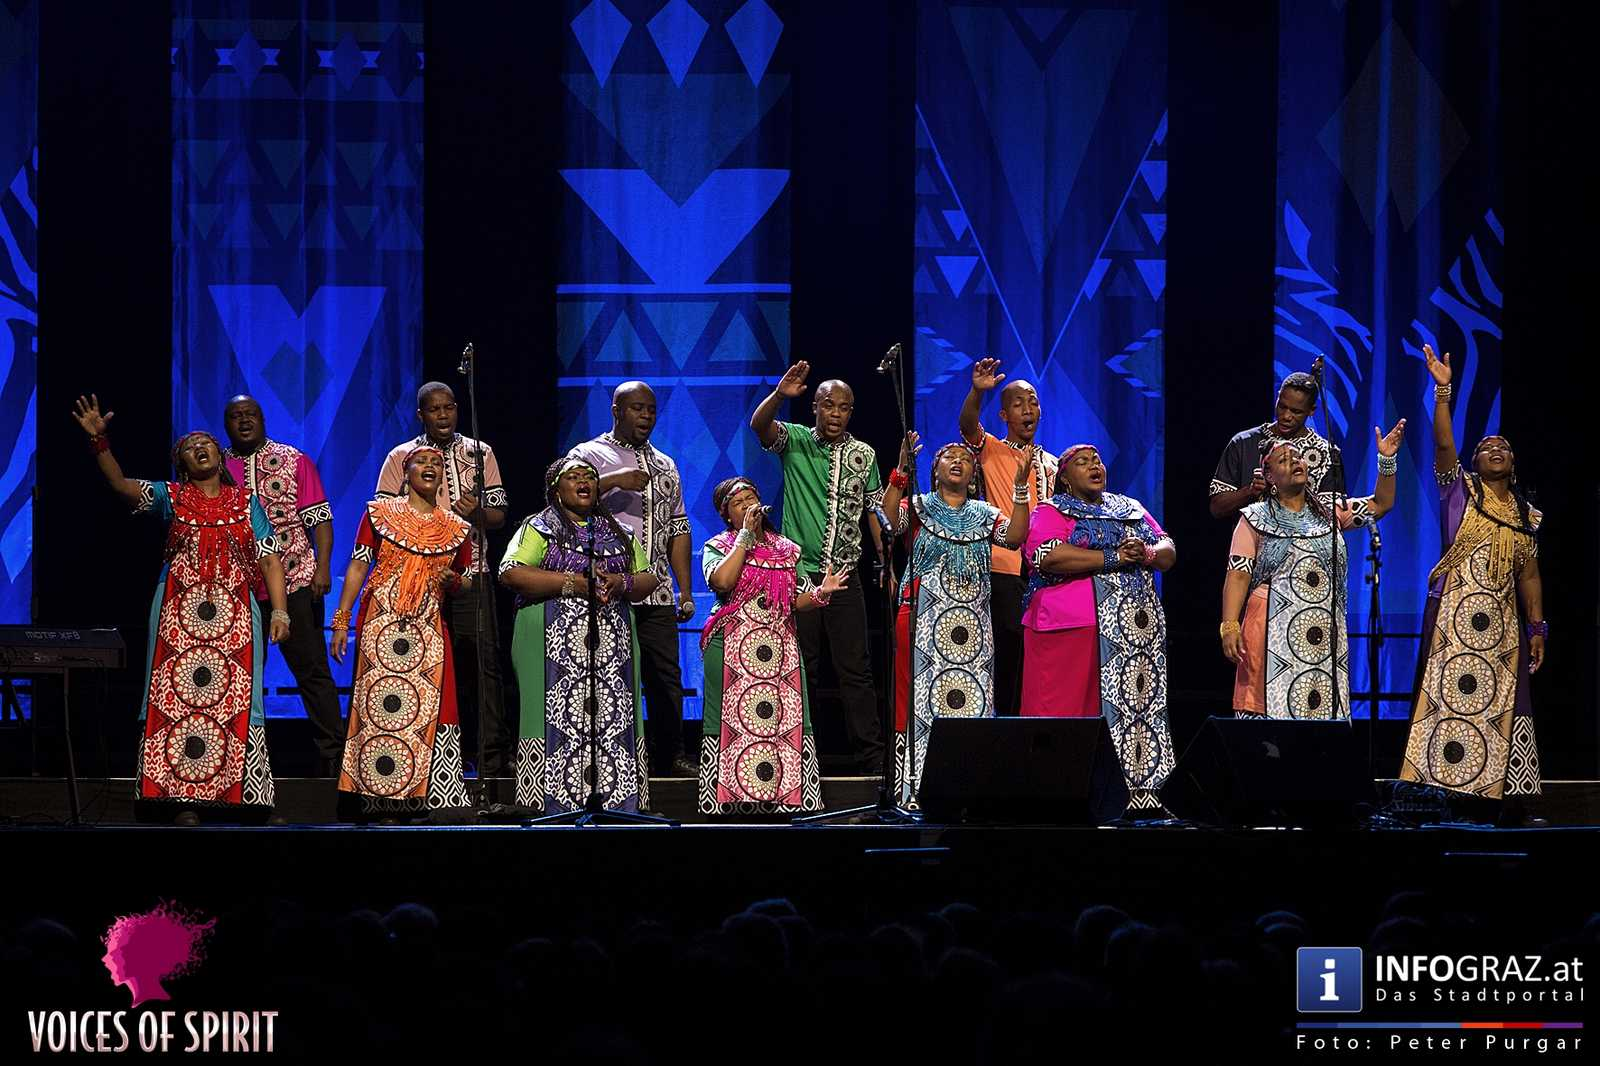 soweto gospel choir internationales chorfestival statdthalle graz voices of spirit eroeffnung festivals 2016 137